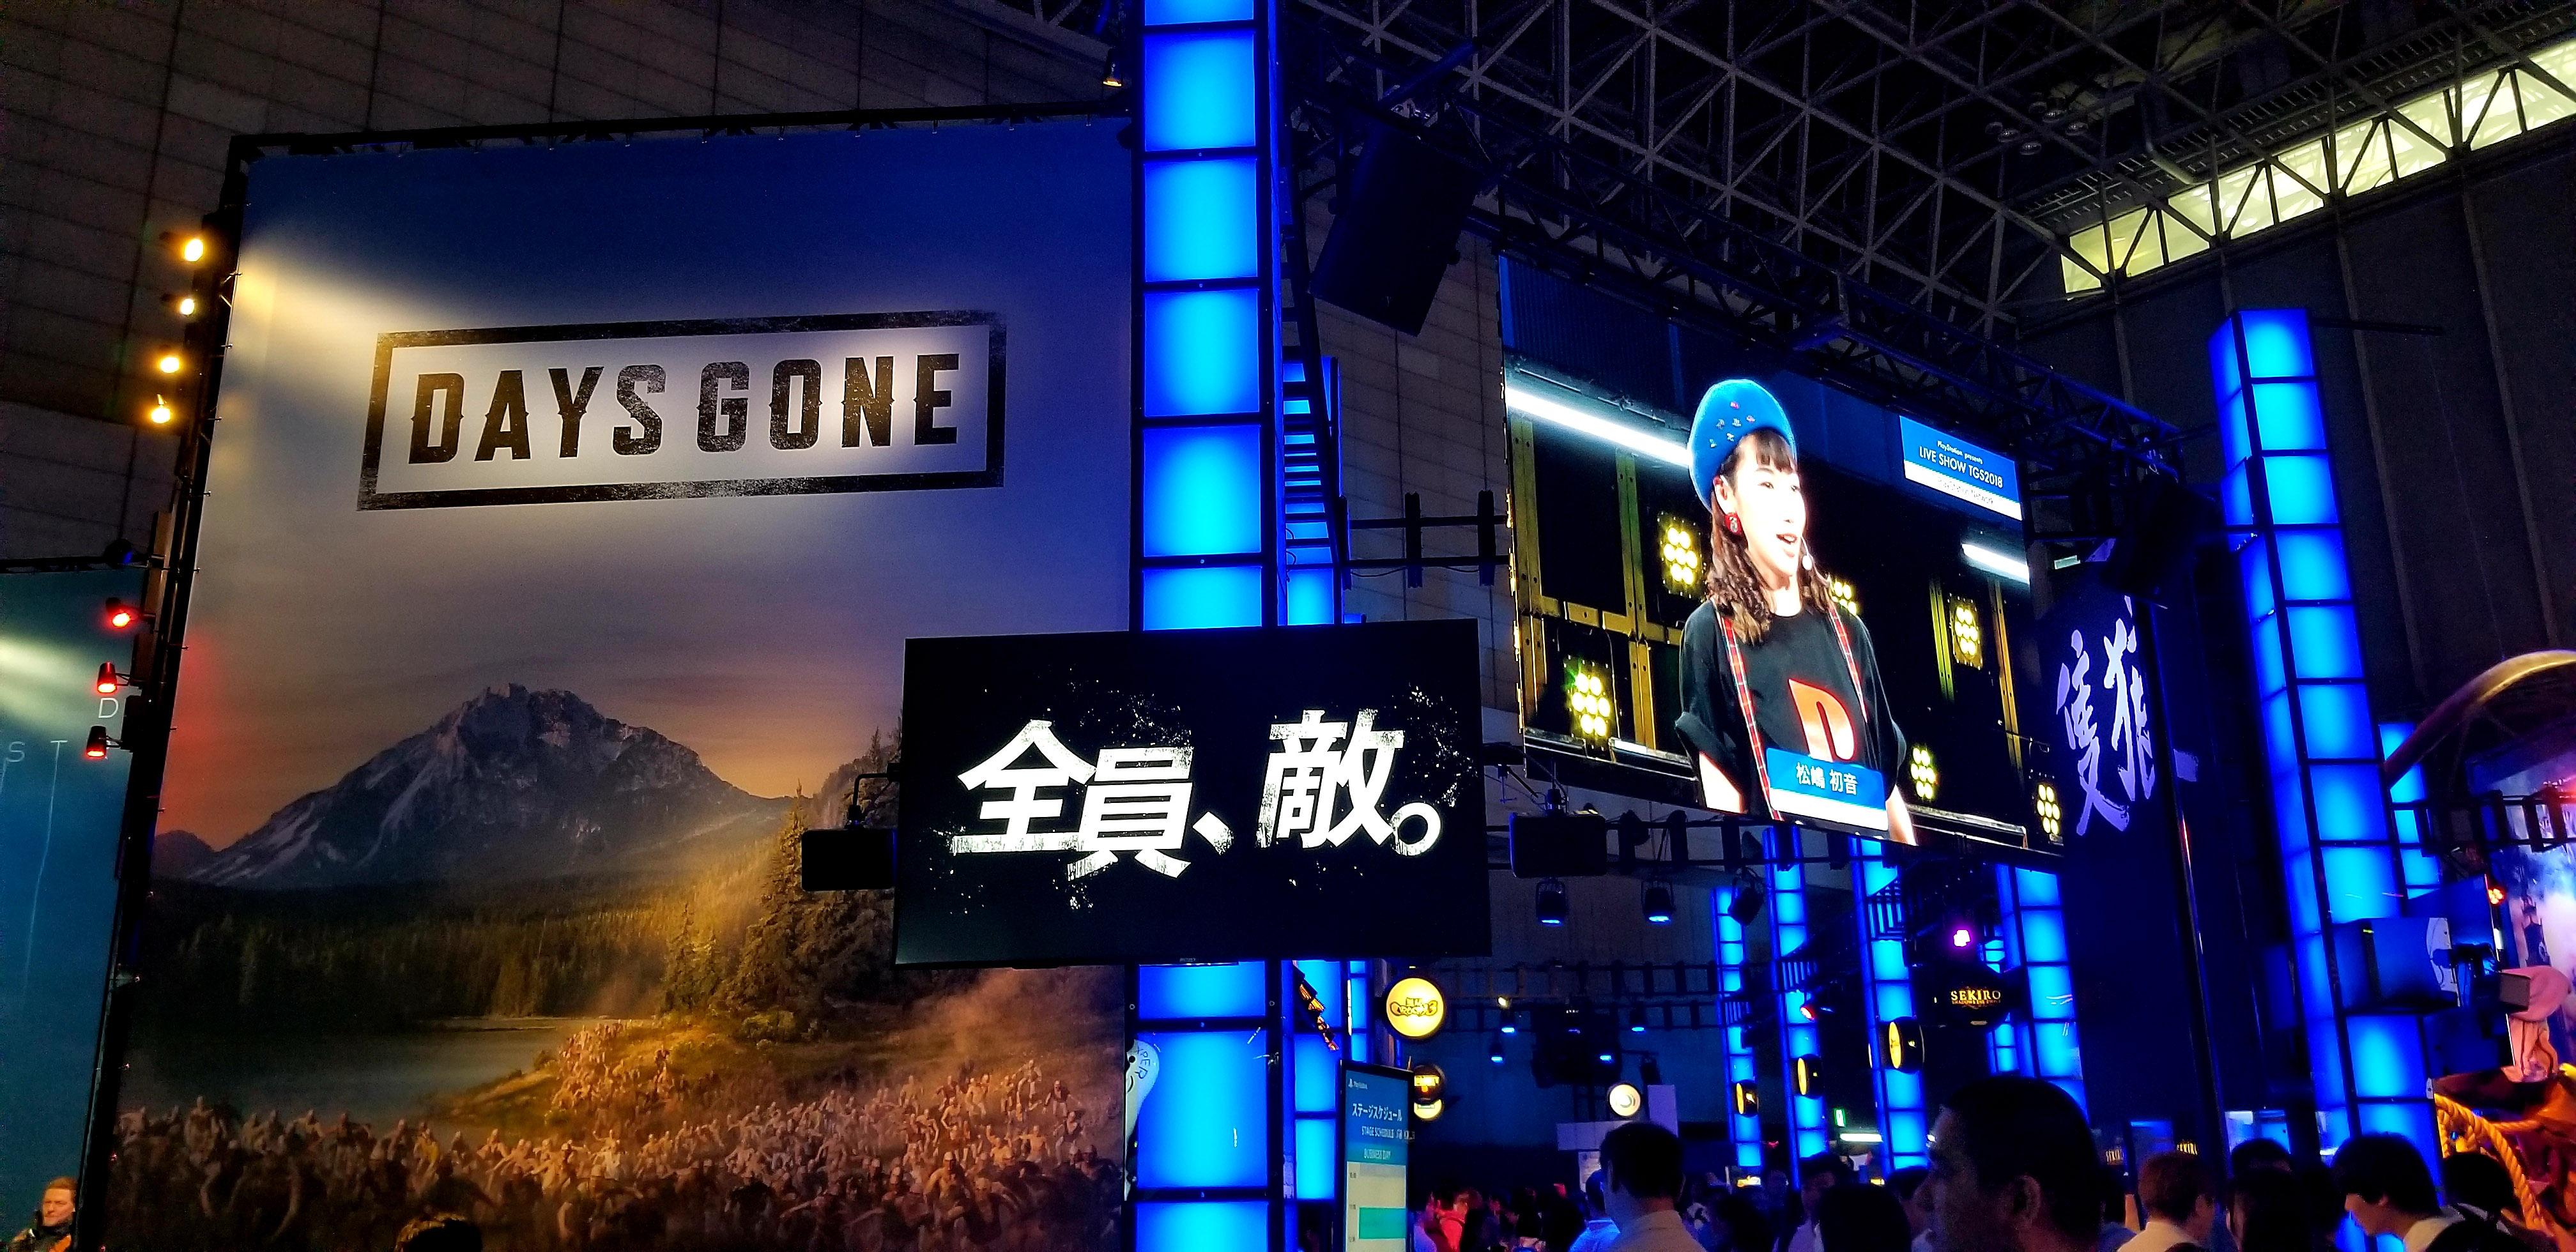 Days Gone at the Tokyo Game Show 2018